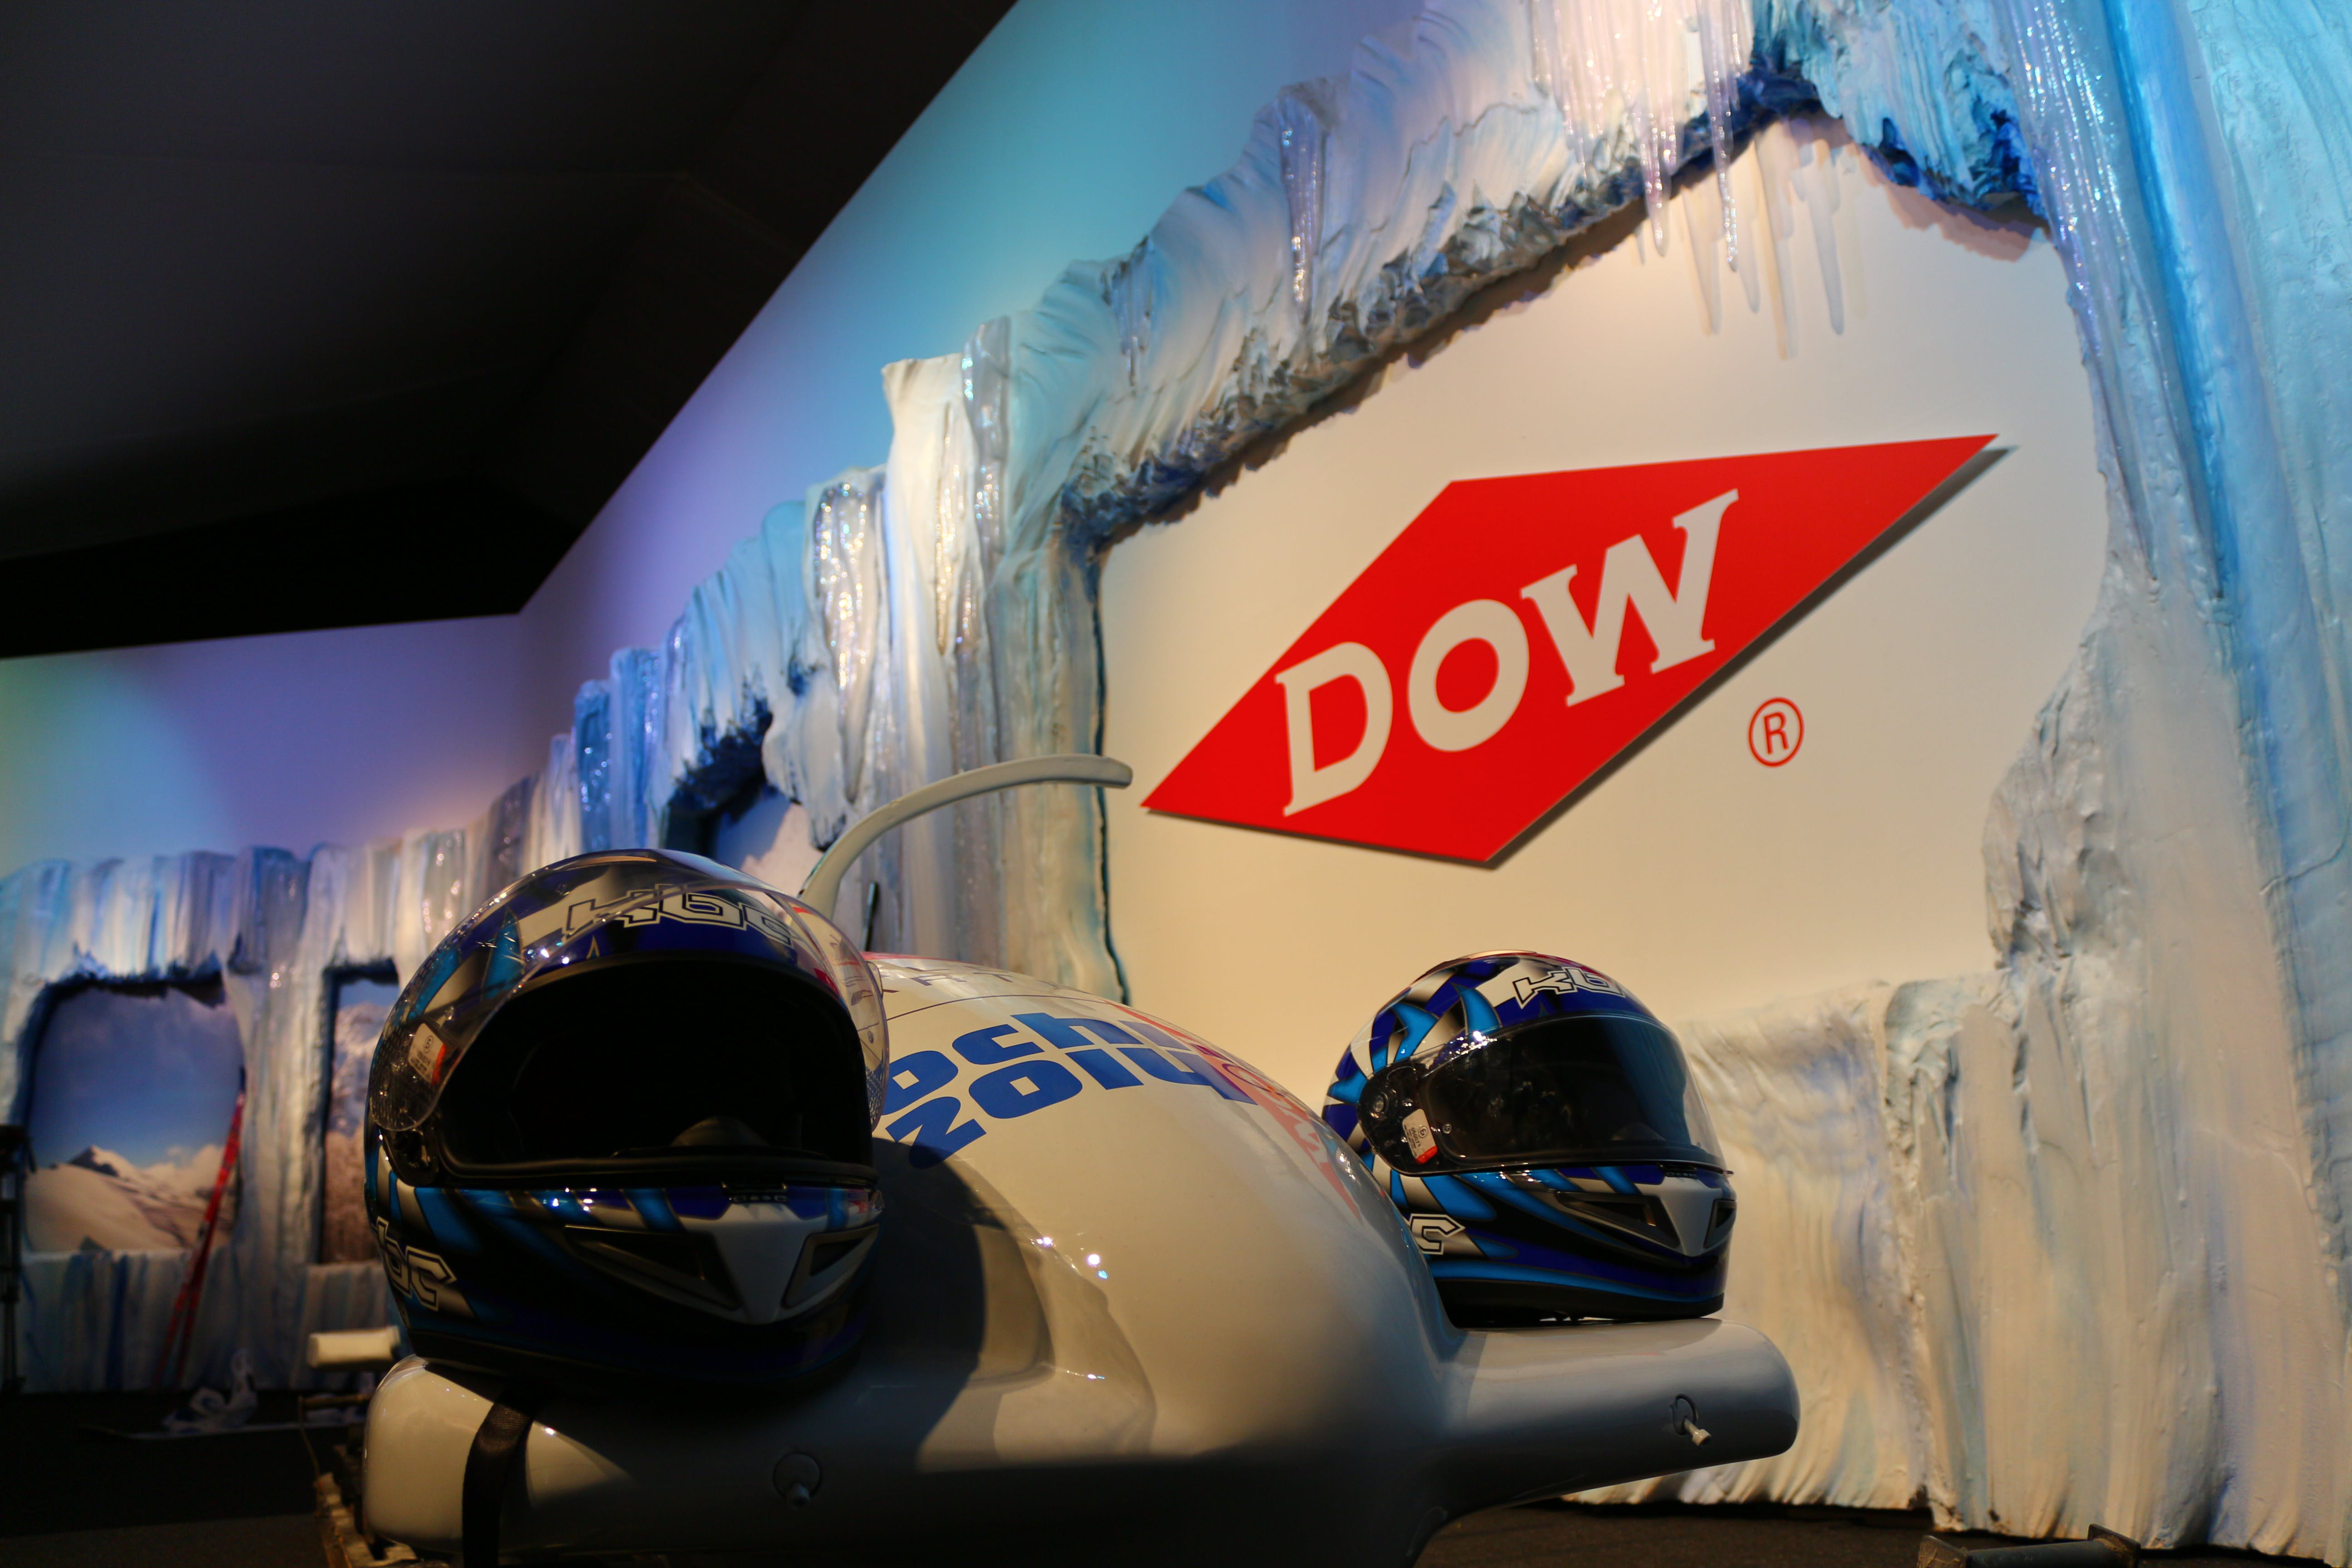 Dow experiential